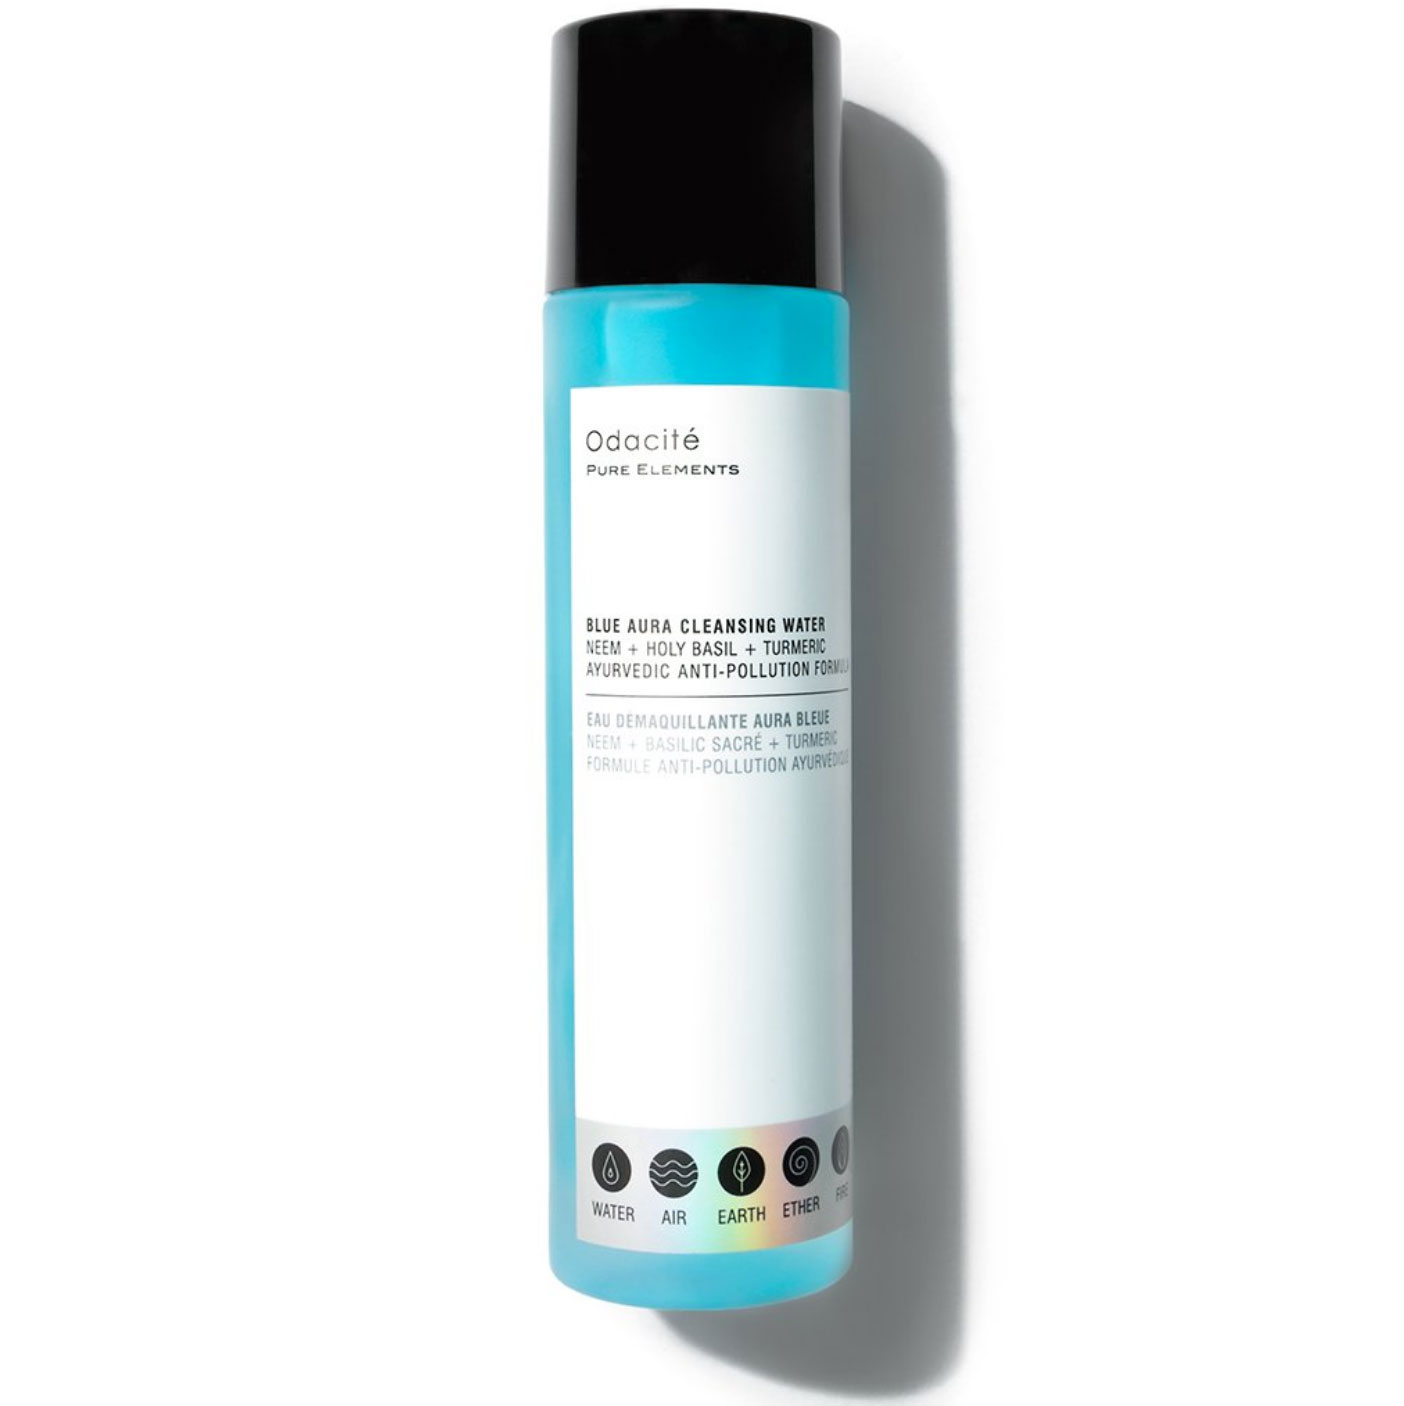 Odacite Blue Aura Cleansing Water Best New Products - You'll never have an excuse not to wash your face again thanks to this no-rinse, micelles cleanser that removes pollution, impurities and even the toughest makeup in one easy step. $39, odacite.com